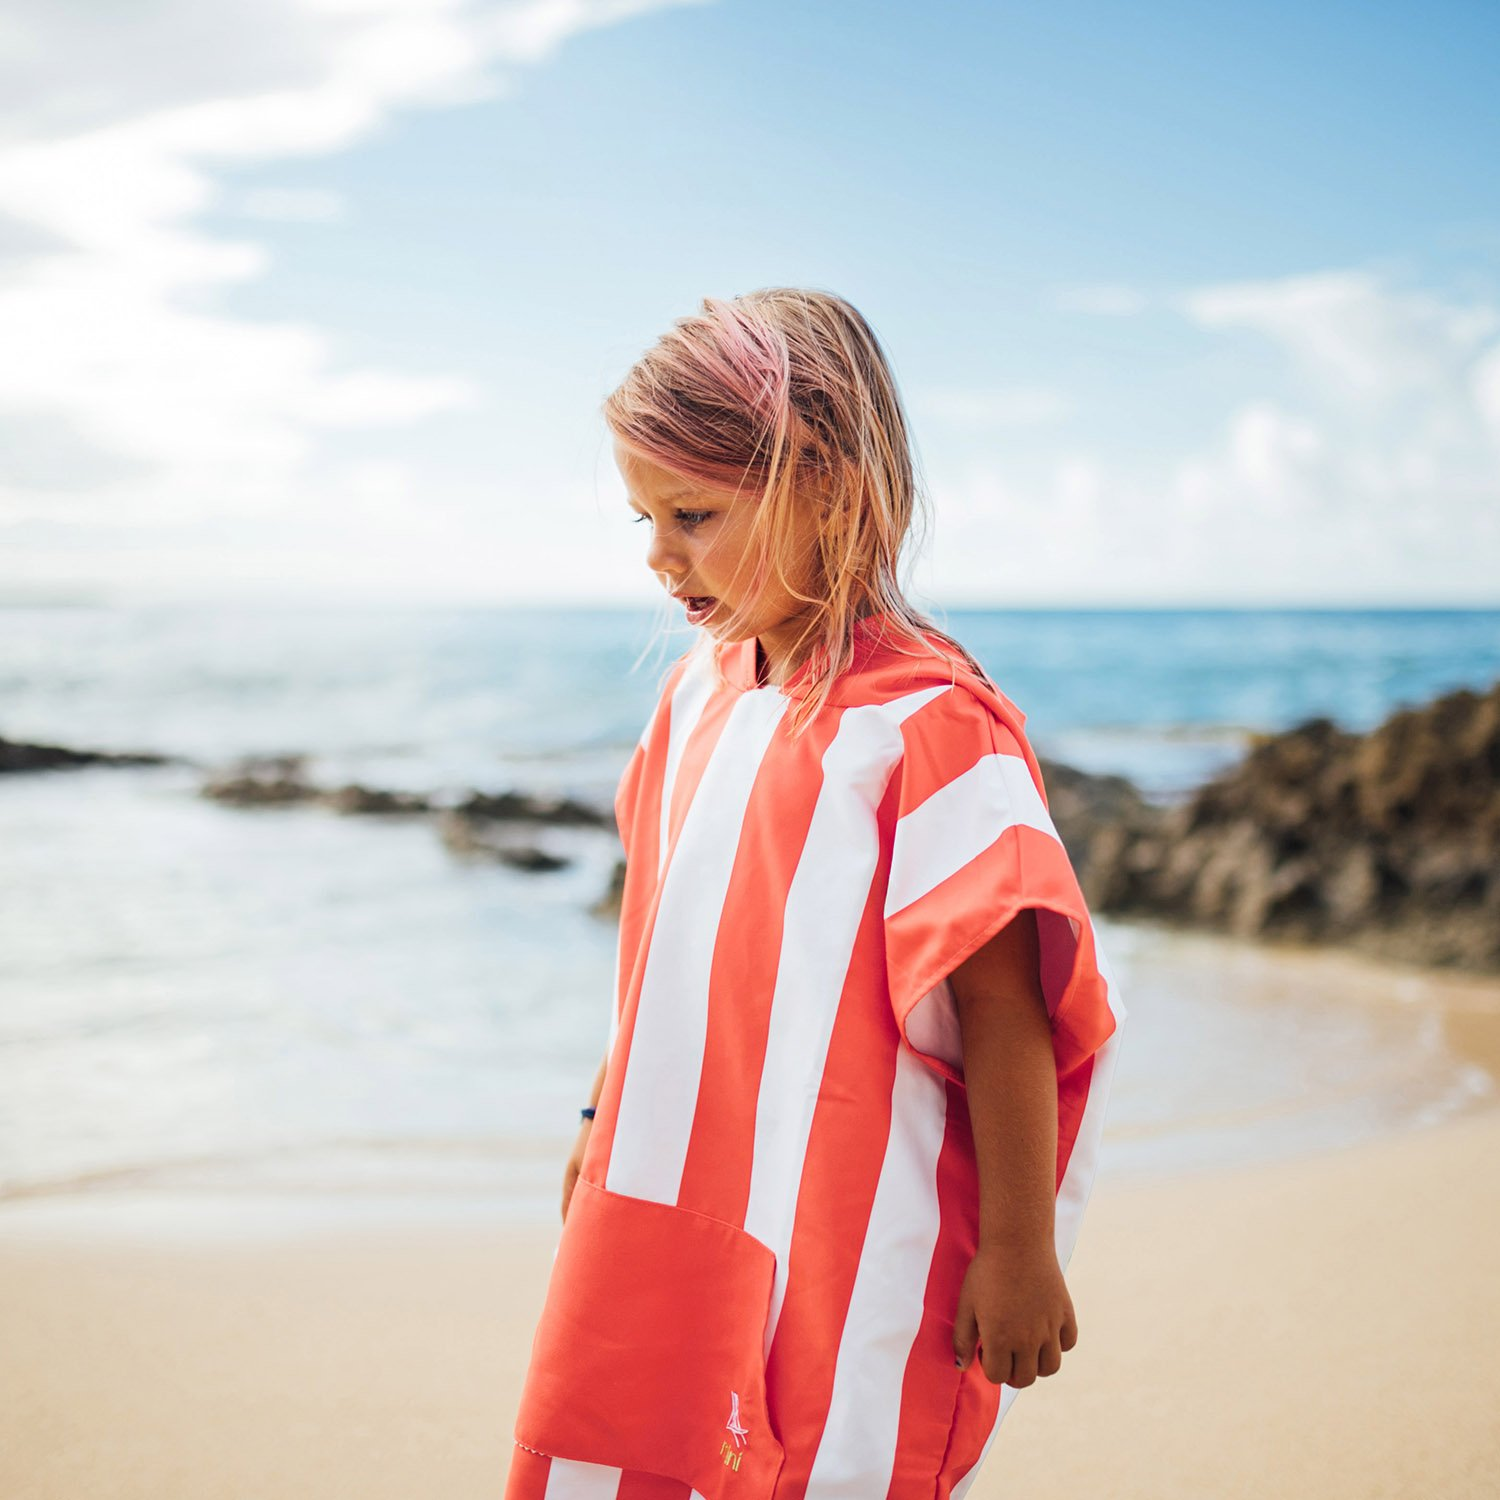 - Mini collection Beach /& Pool 28 long packs into its own drawstring beach bag Quick Dry Hooded Towels for Swim Compact /& Lightweight Microfibre Kids Poncho with hood Suits ages 3-7